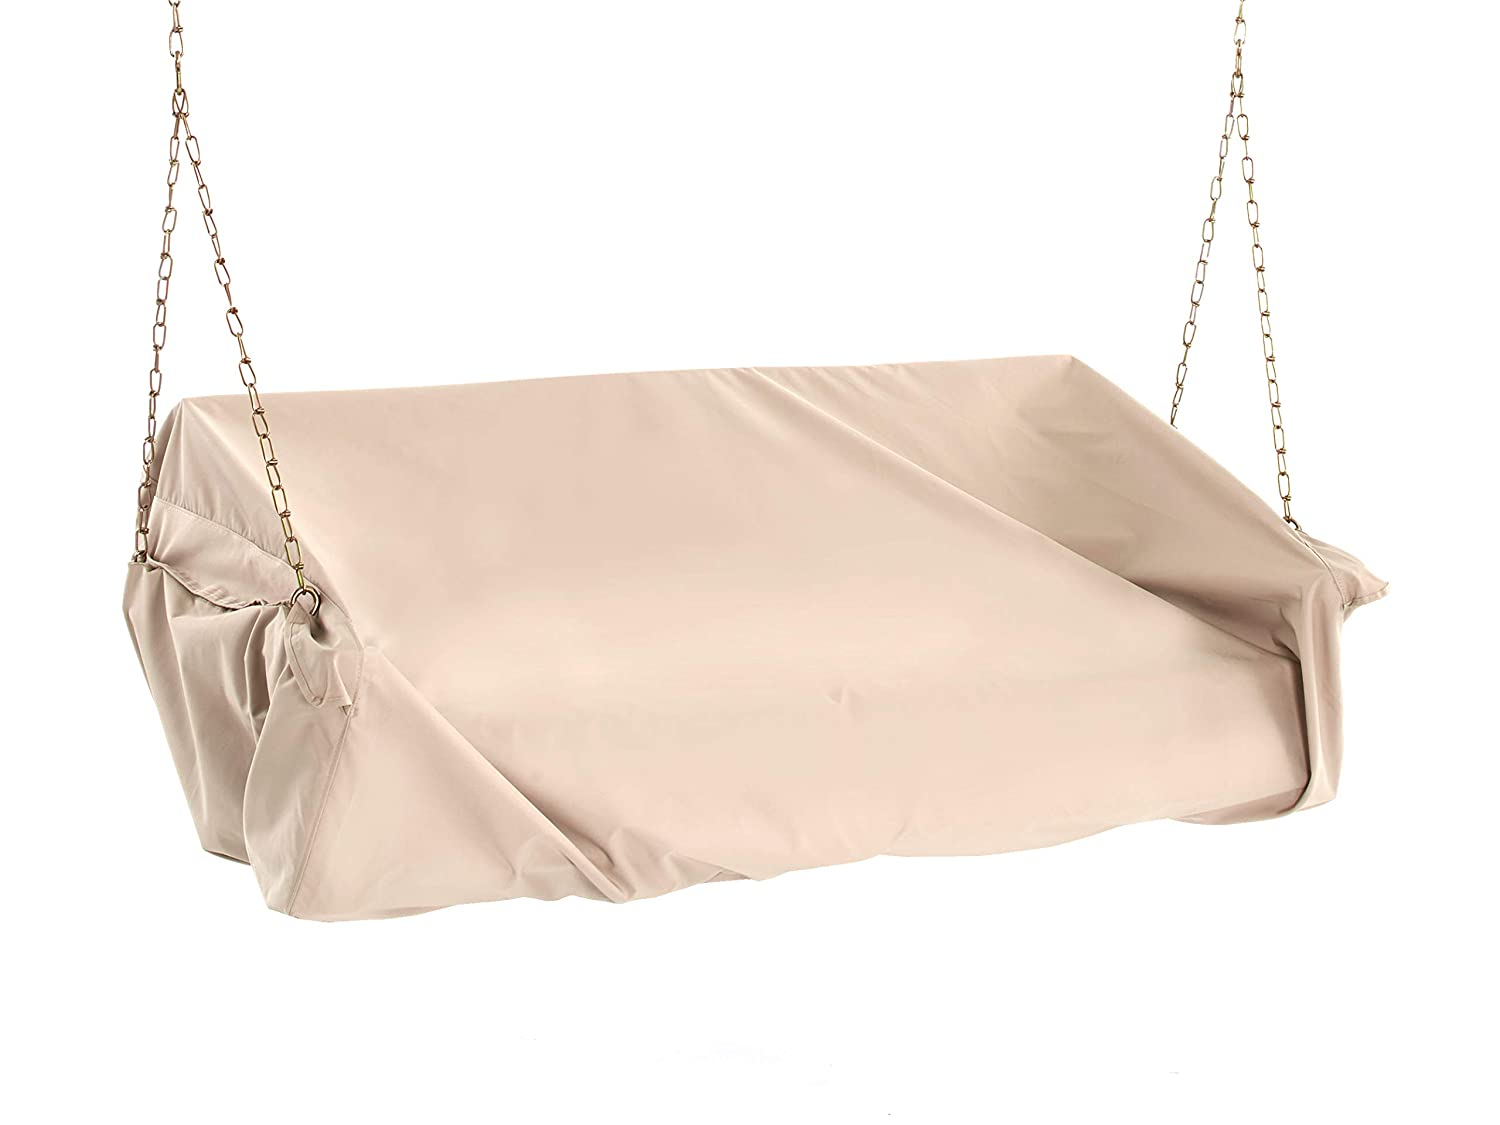 Covermates Outdoor Swing Covers 63W x 26D x 26H Elite 300D Stock-Dyed Polyester Elastic Hem Cinches at Bottom Touch Fastener Closure 3 YR Warranty Weather Resistant – Khaki